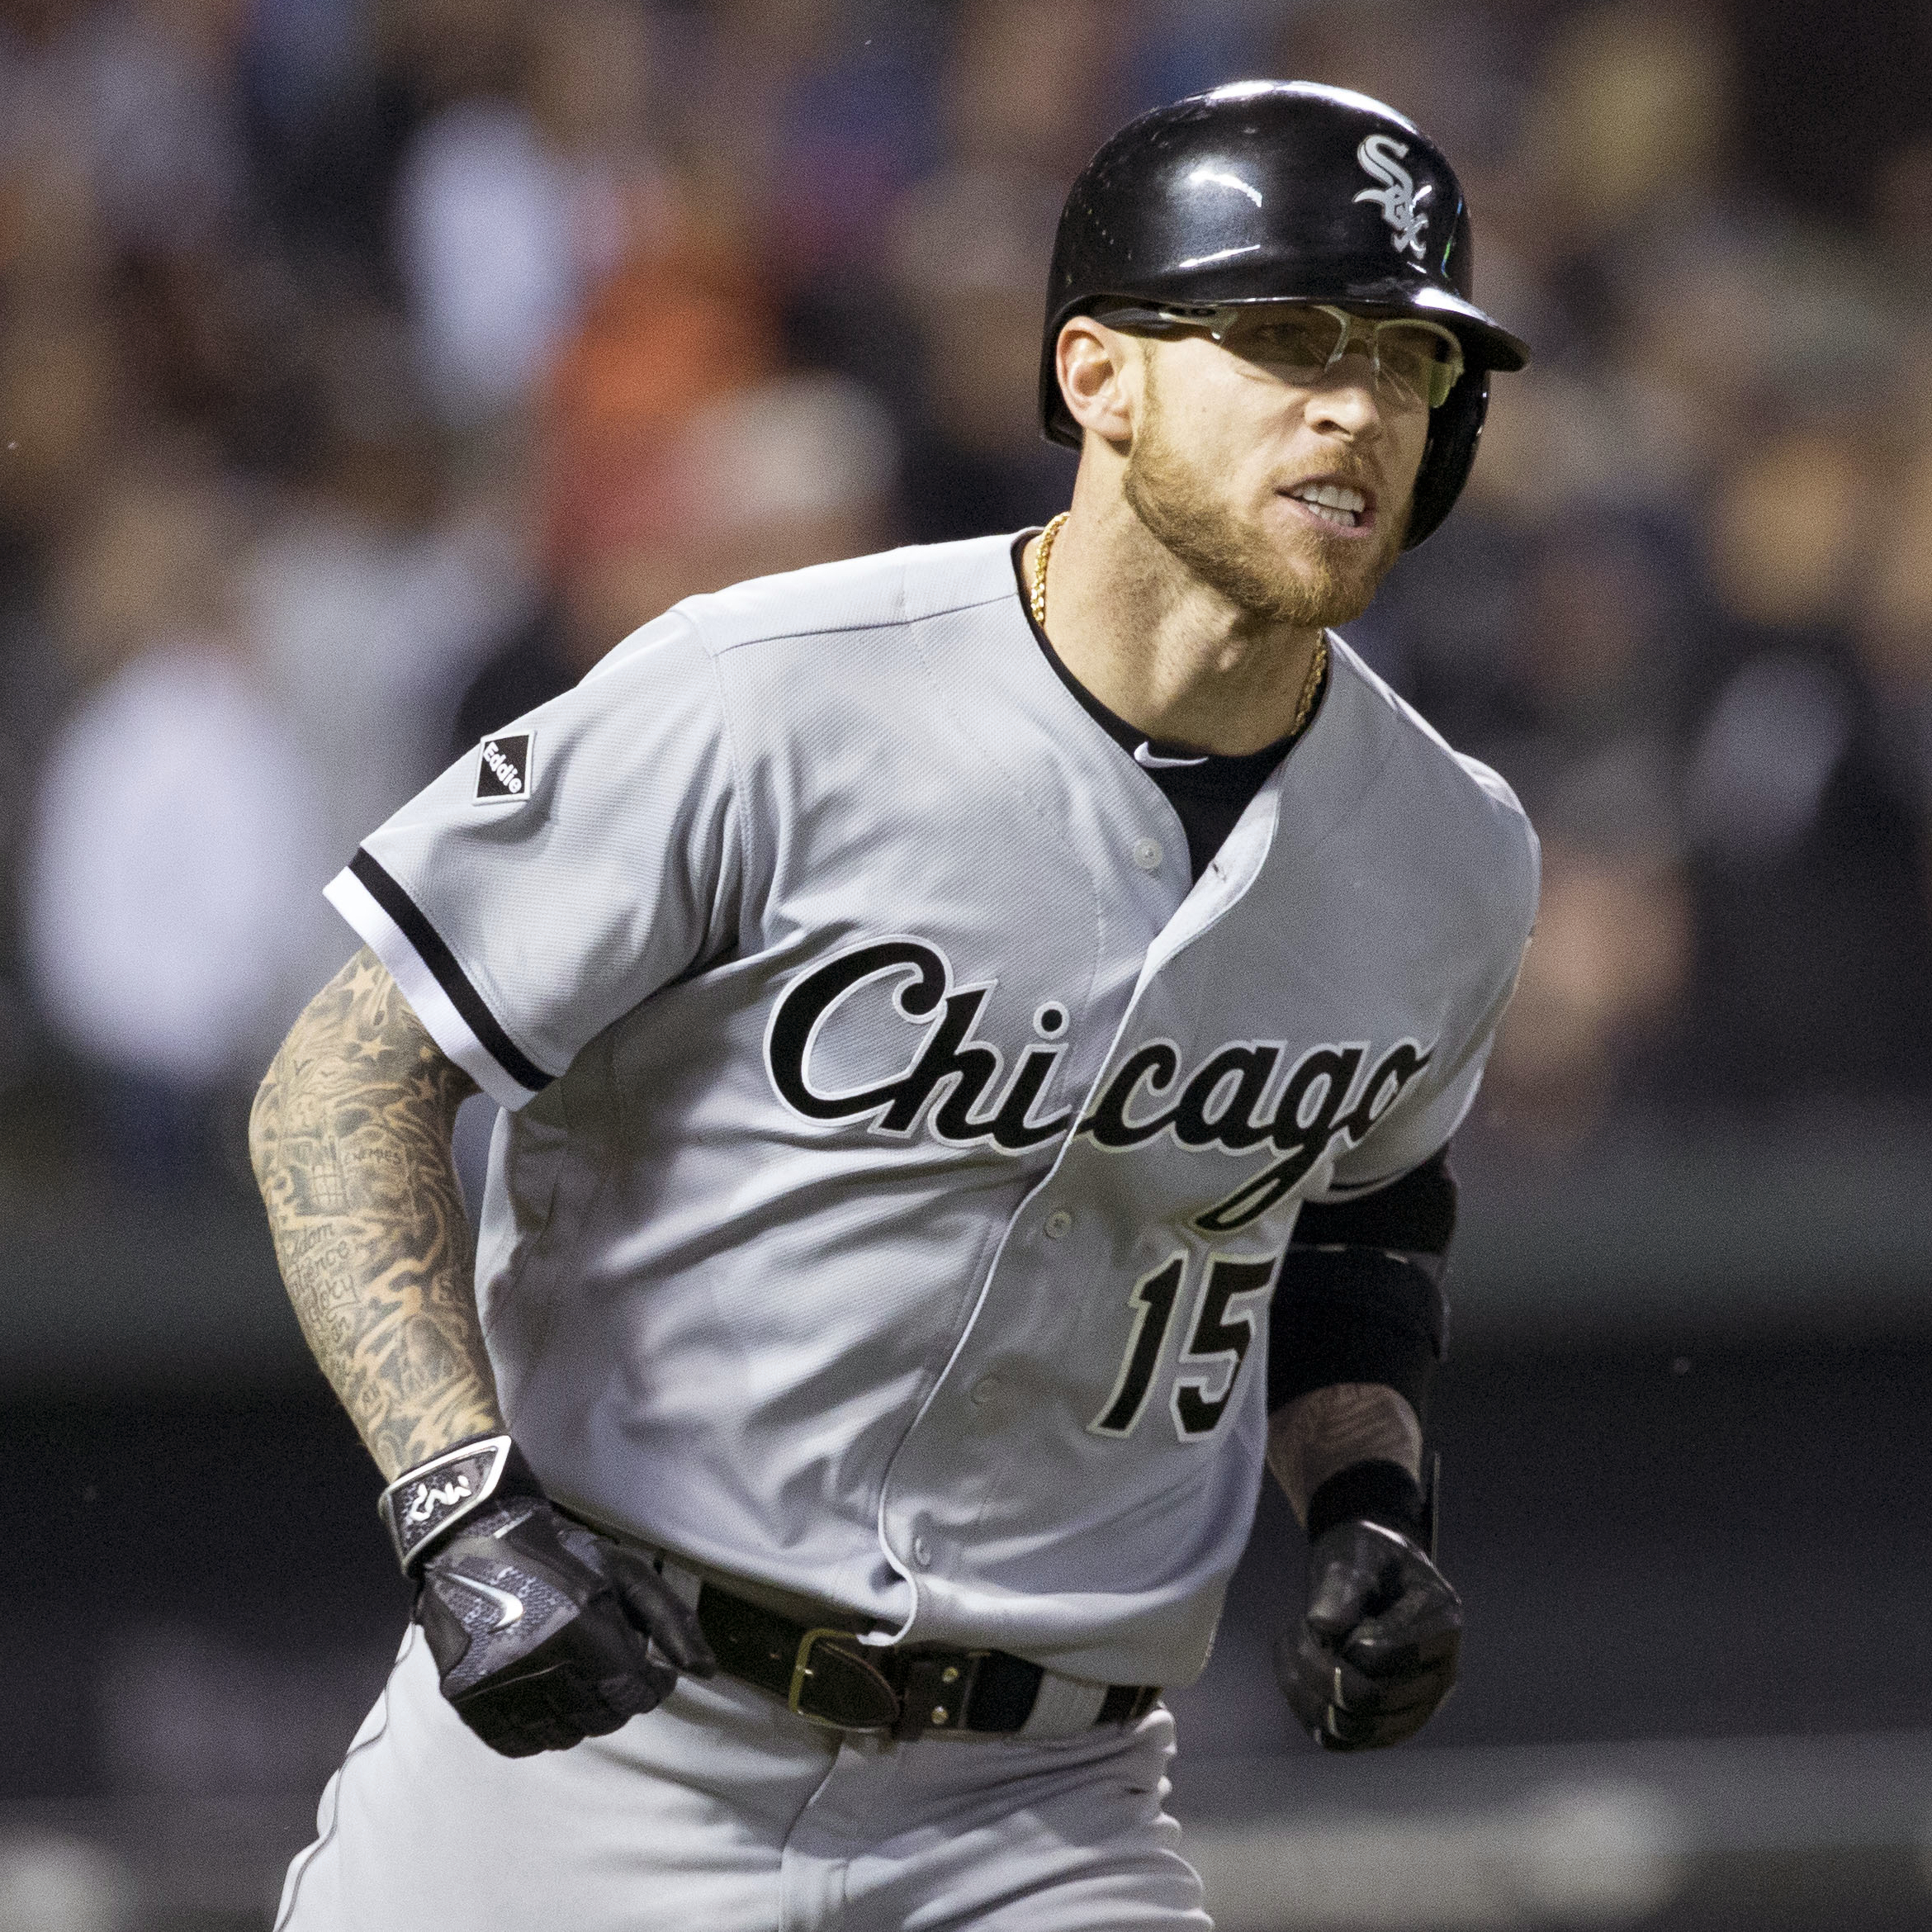 The 29-year old son of father (?) and mother(?) Brett Lawrie in 2019 photo. Brett Lawrie earned a  million dollar salary - leaving the net worth at 0.5 million in 2019